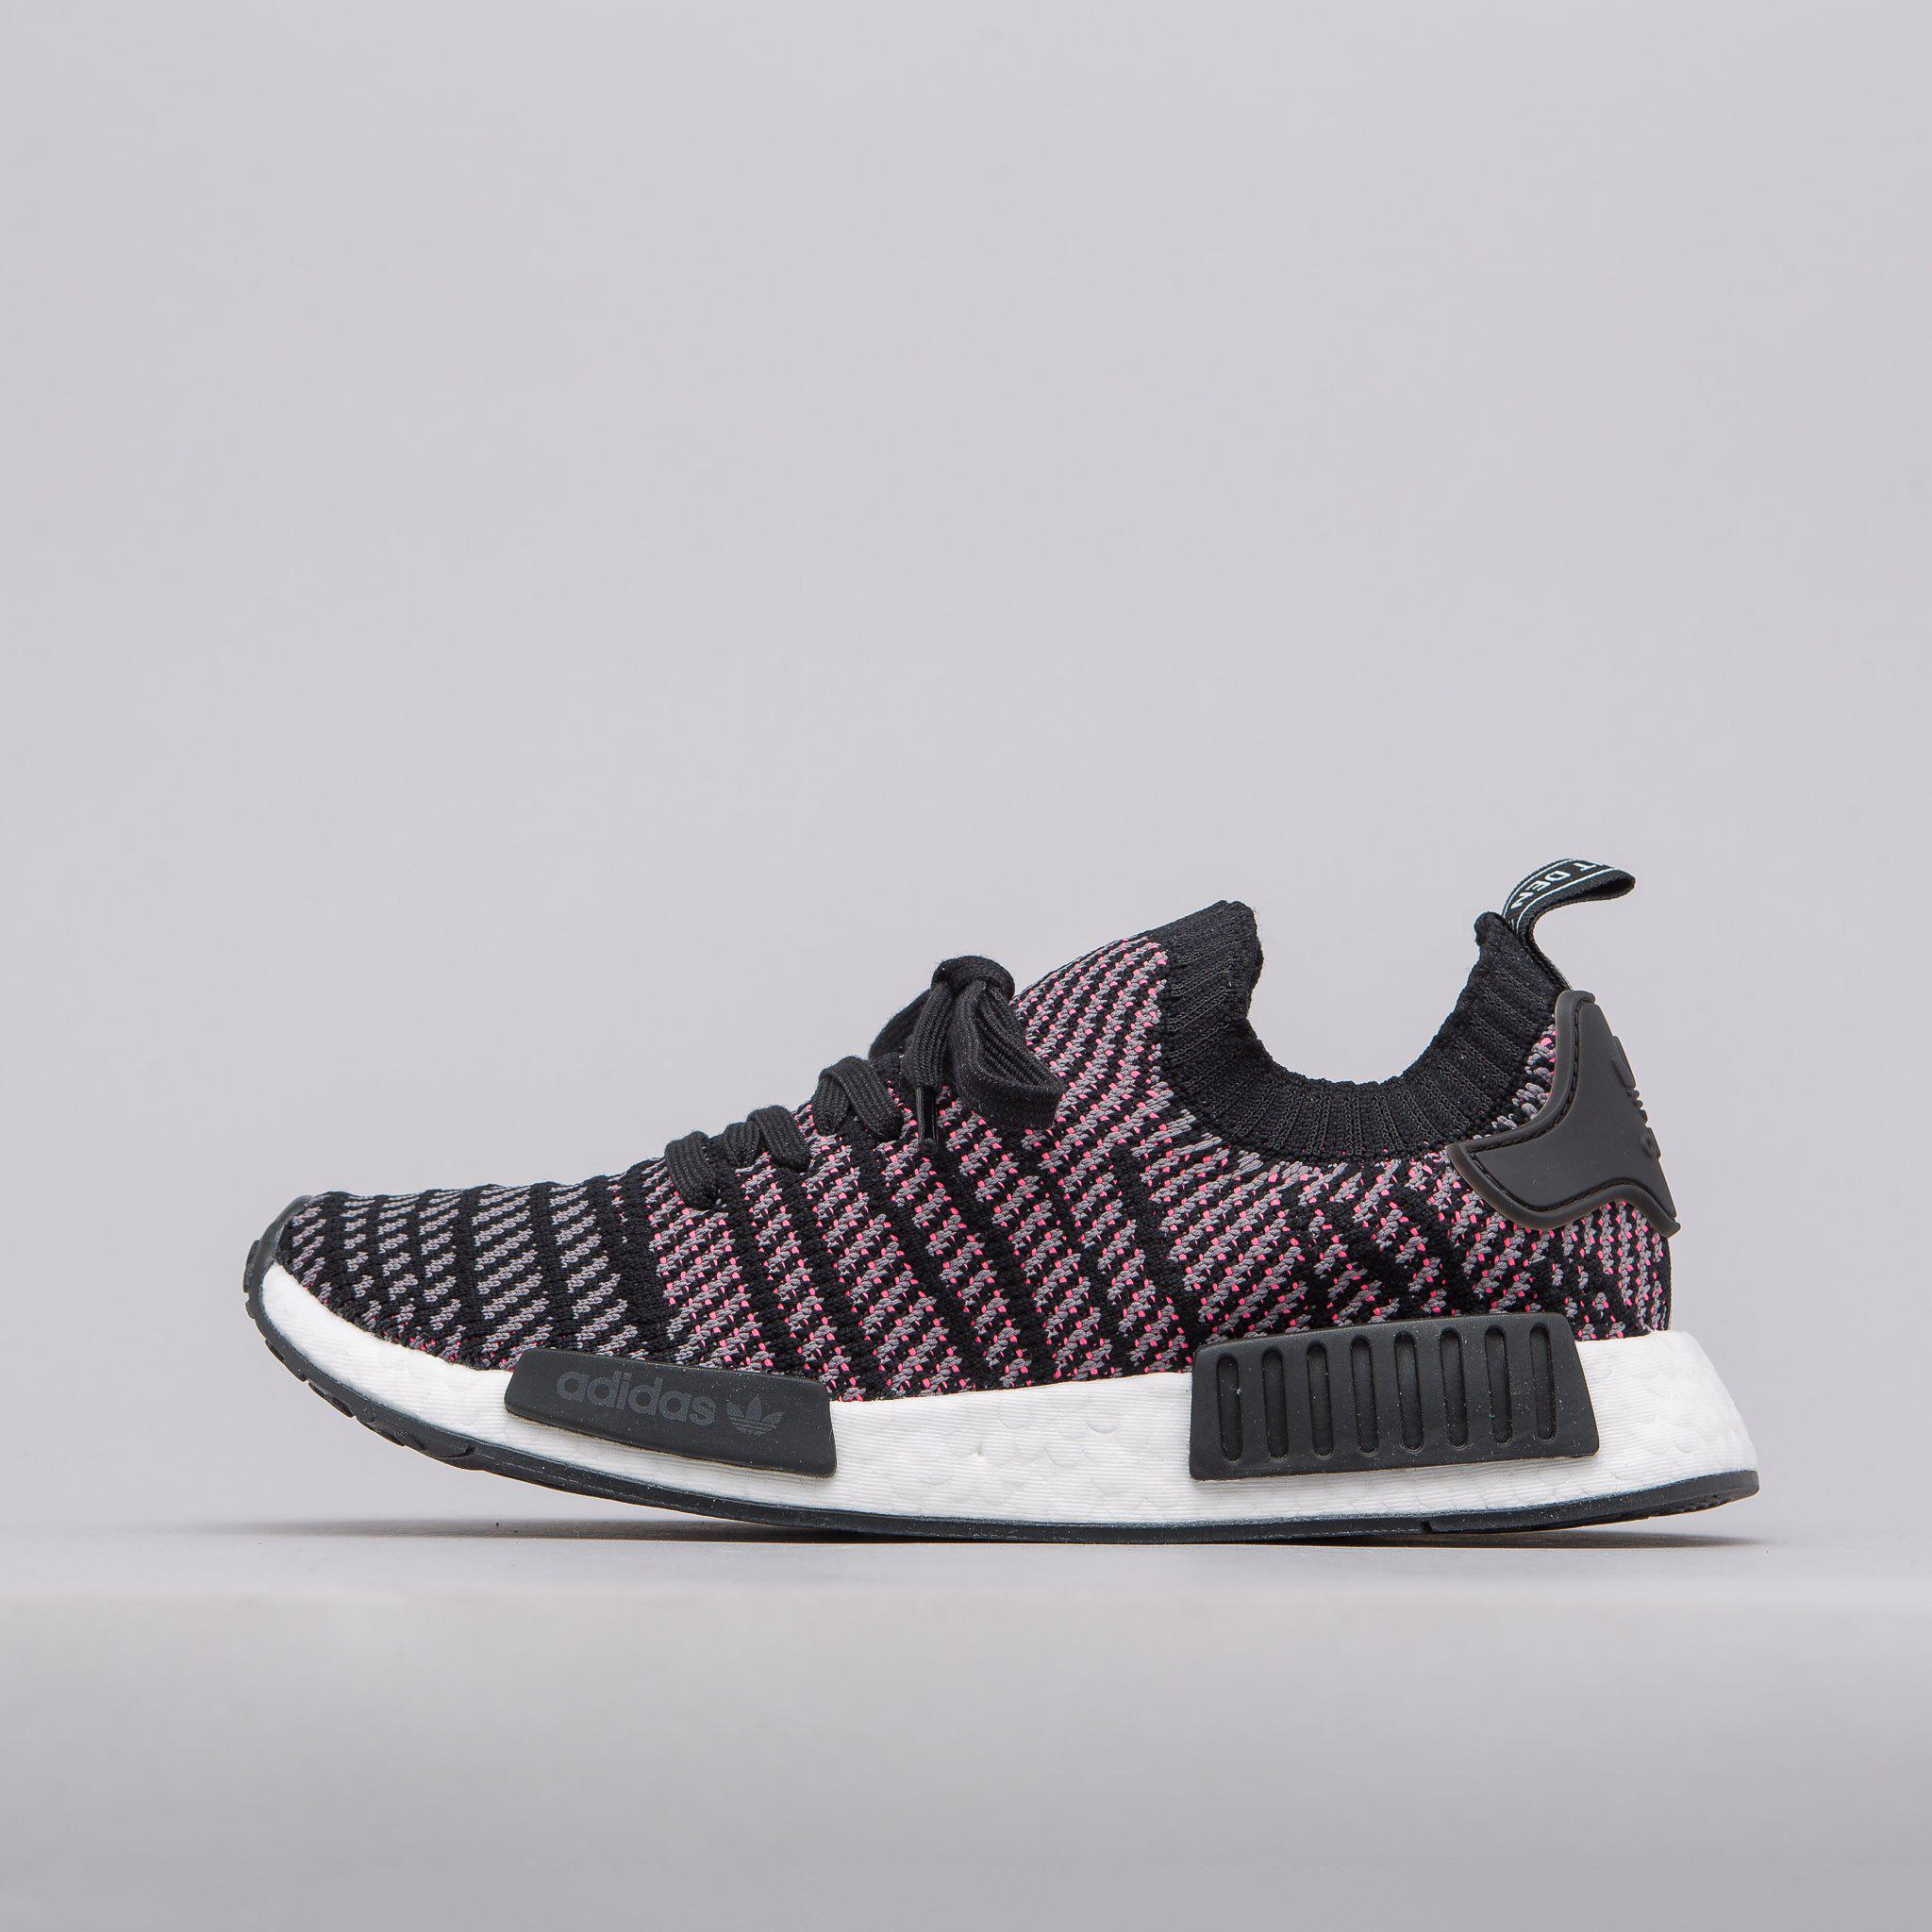 huge discount 3d019 bb968 Adidas Nmd R1 Stlt Primeknit In Solar Pink/core Black for men